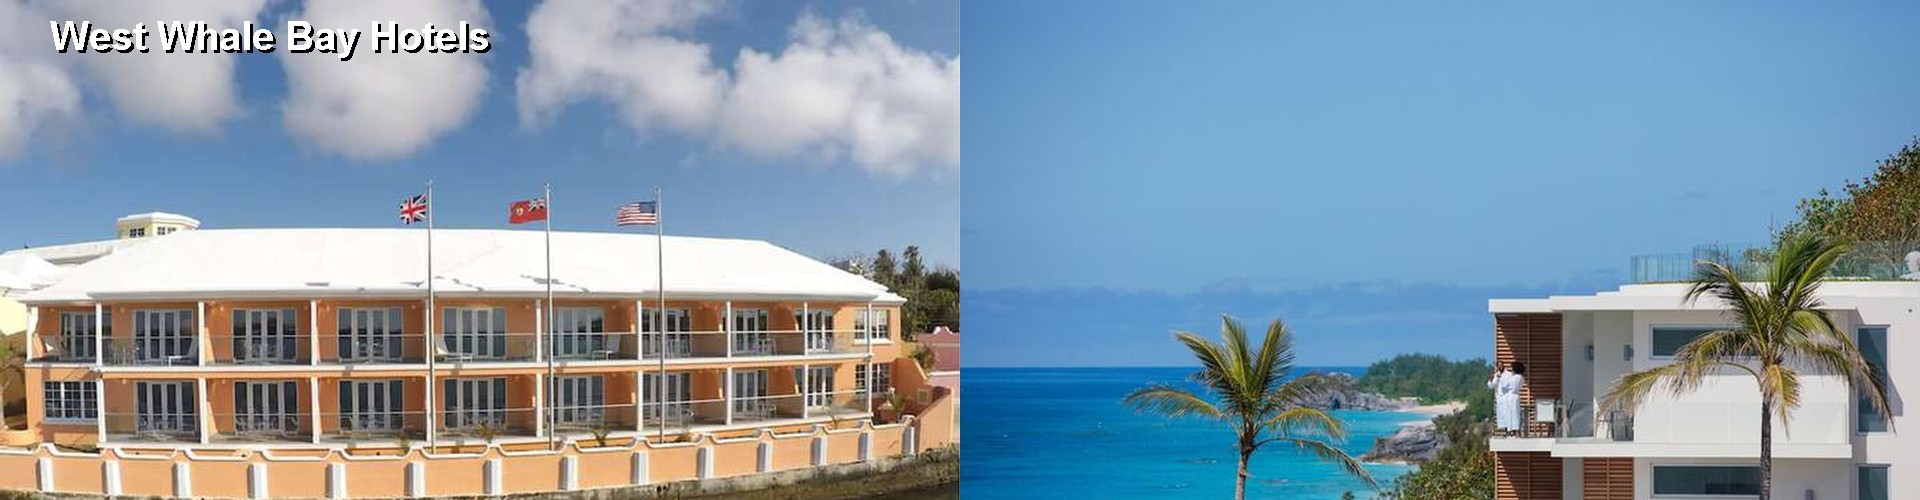 5 Best Hotels near West Whale Bay